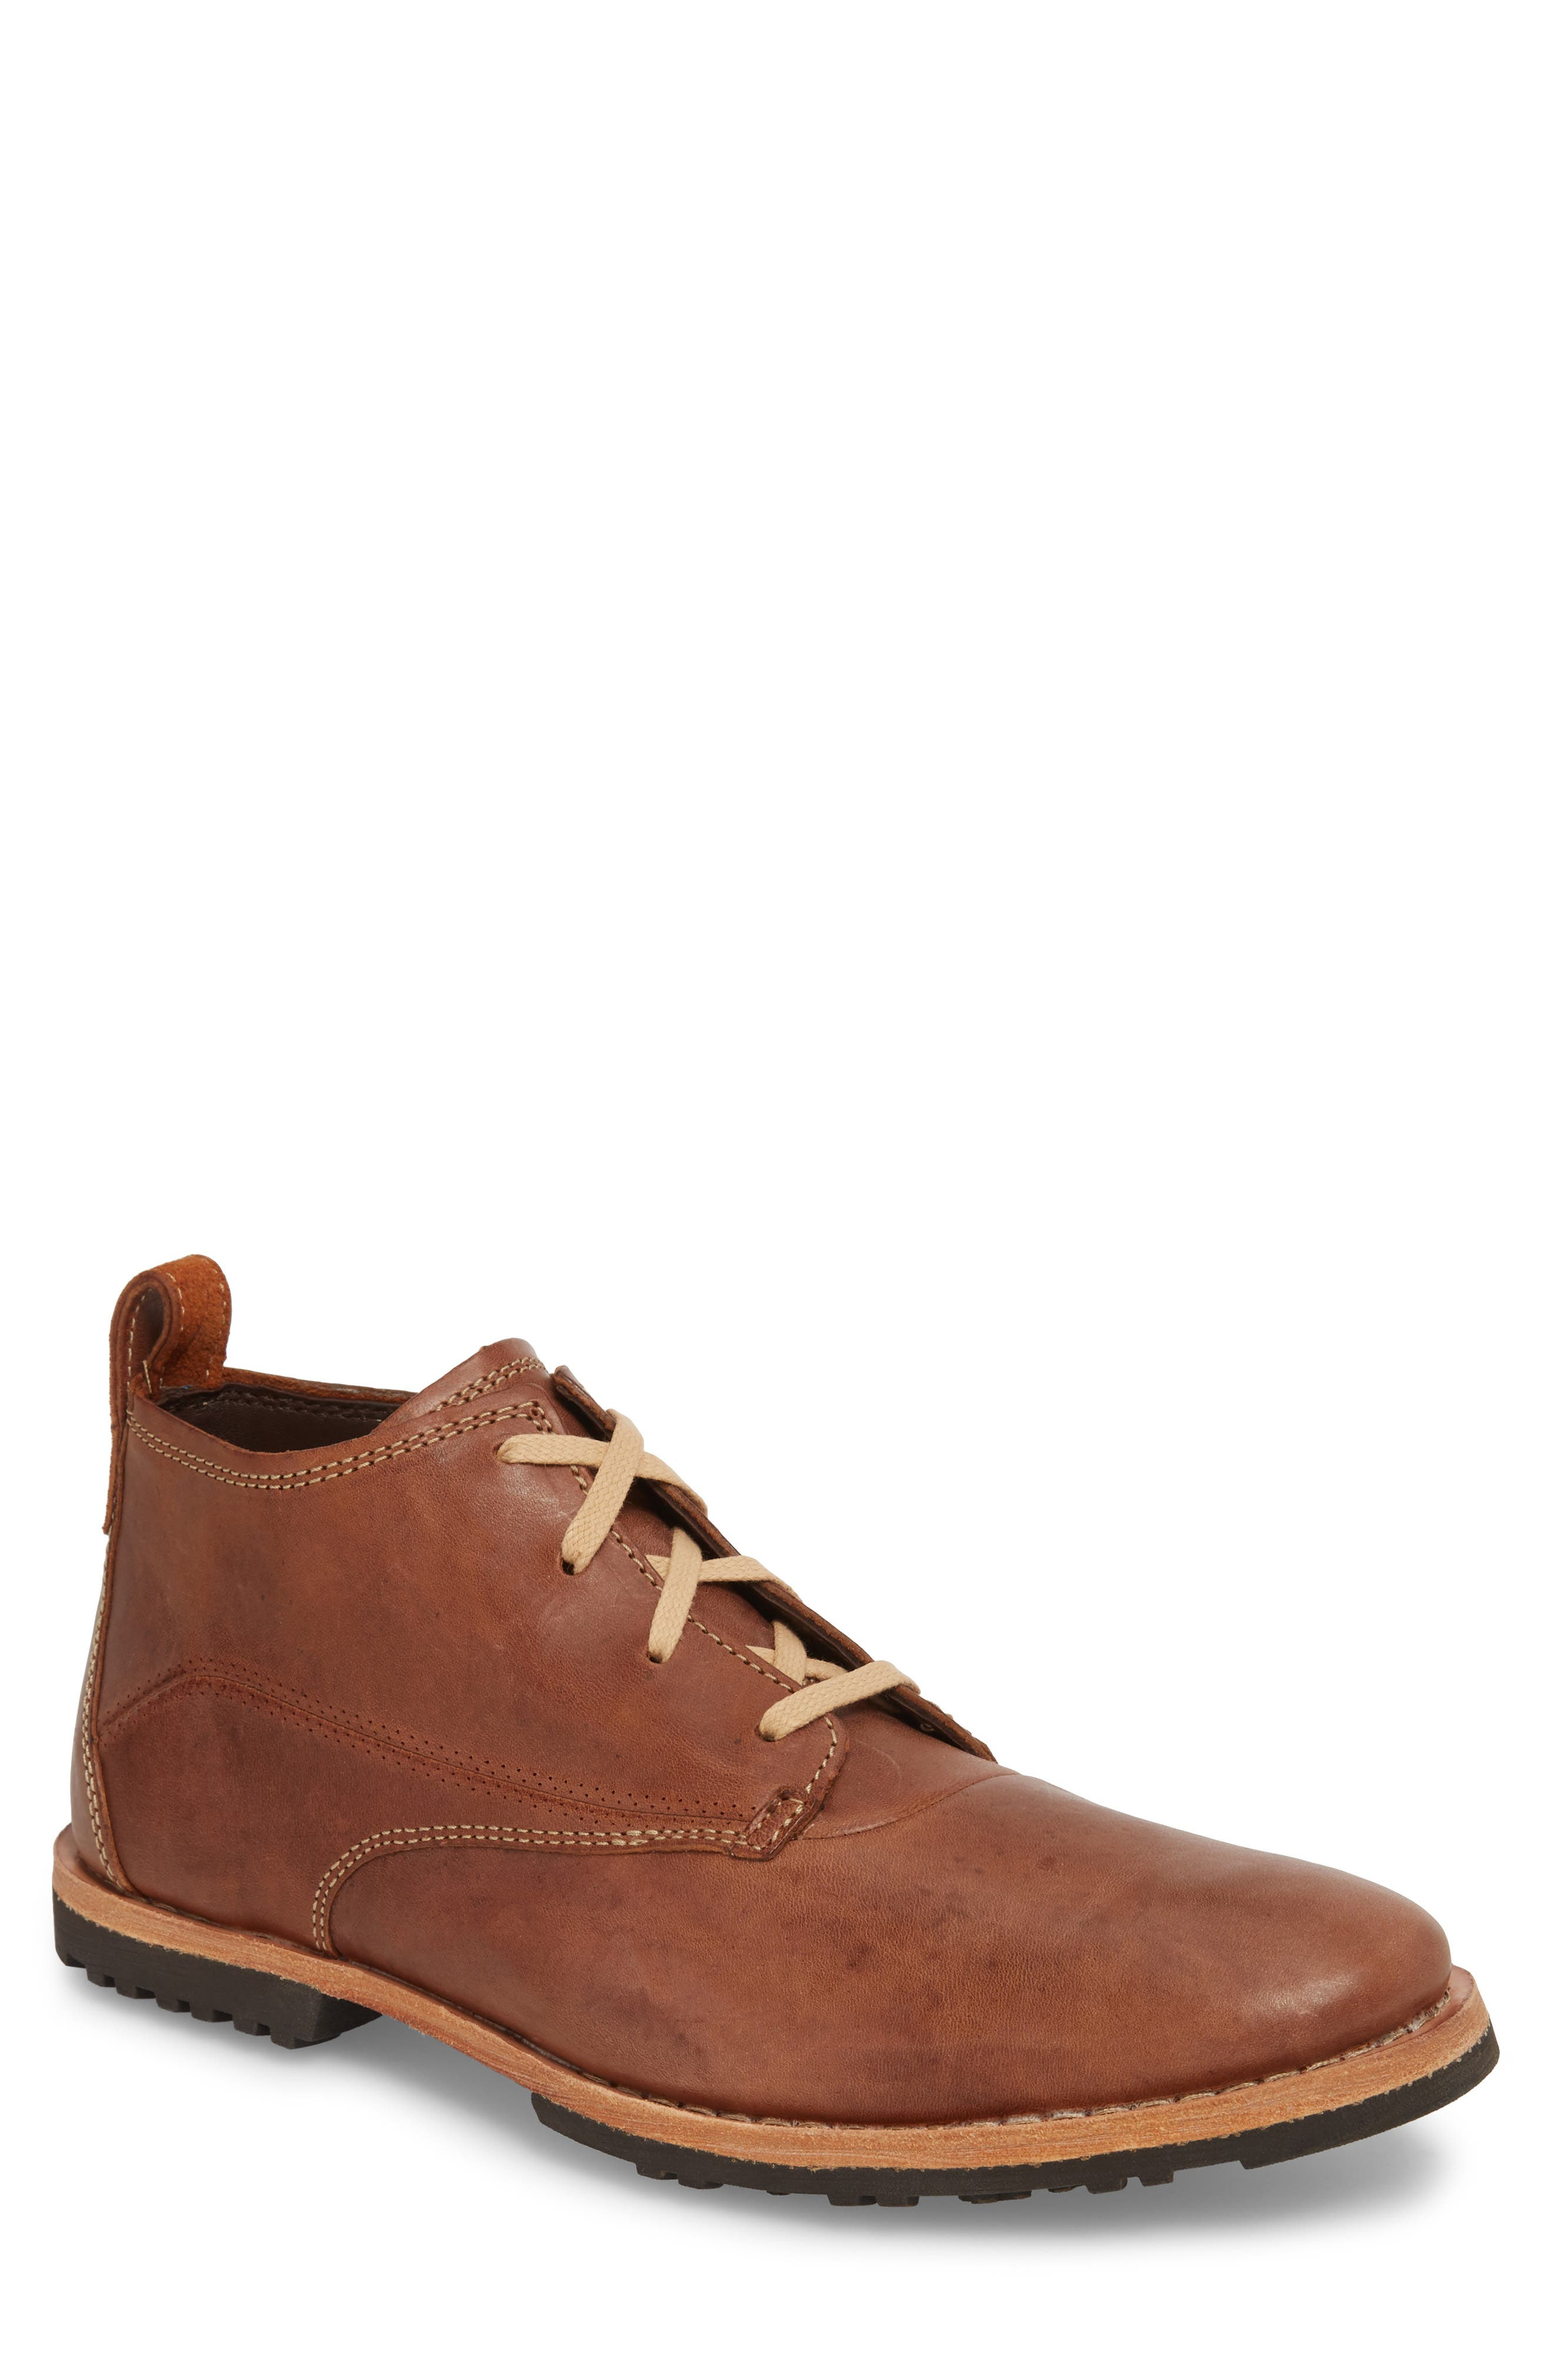 'Bardstown' Chukka Boot,                         Main,                         color, RUSSET BROWN LEATHER